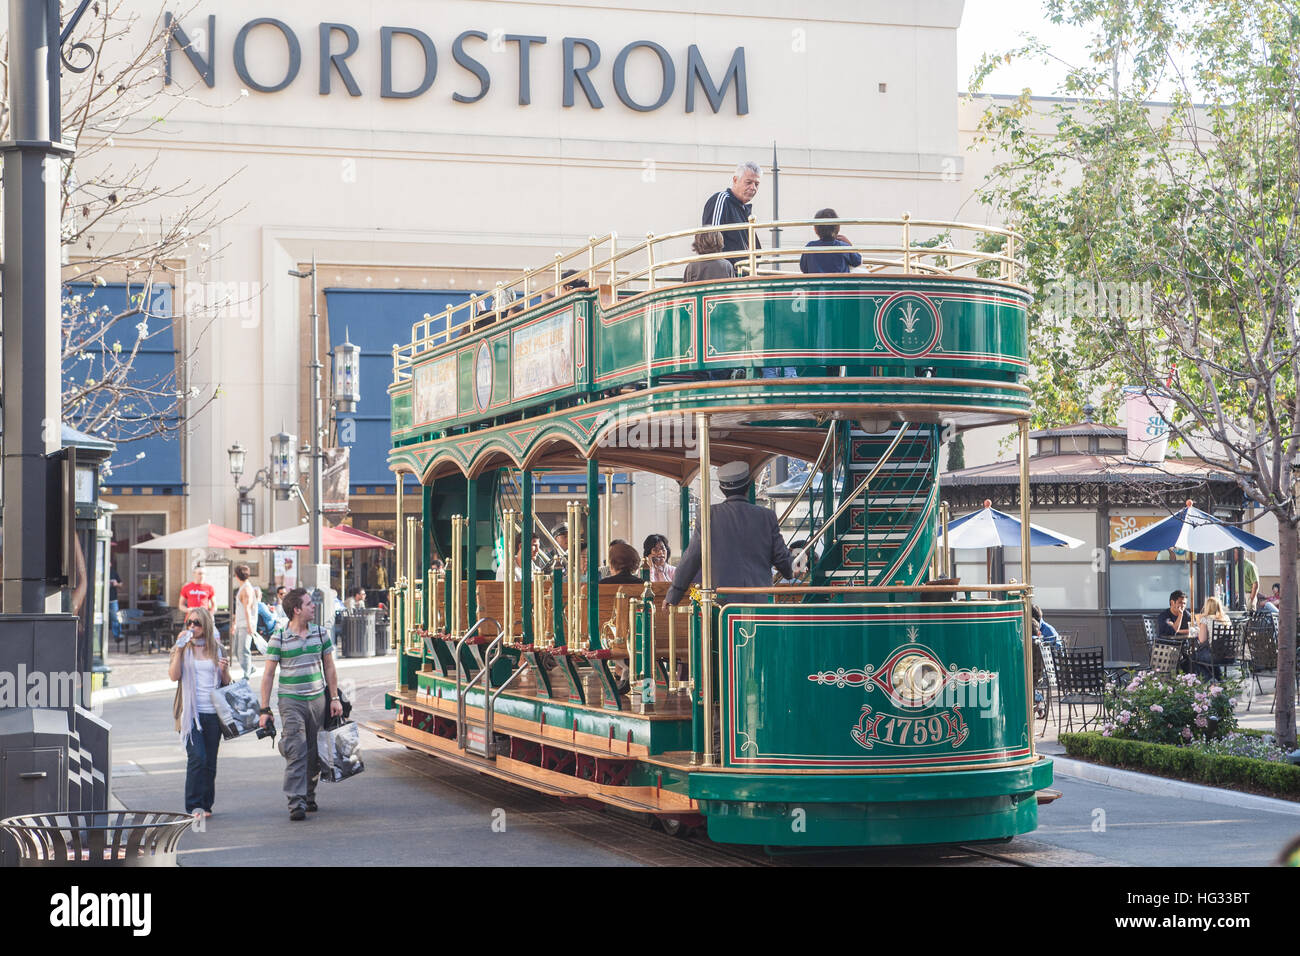 Nordstrom The Grove >> Nordstrom The Grove Stock Photos Nordstrom The Grove Stock Images